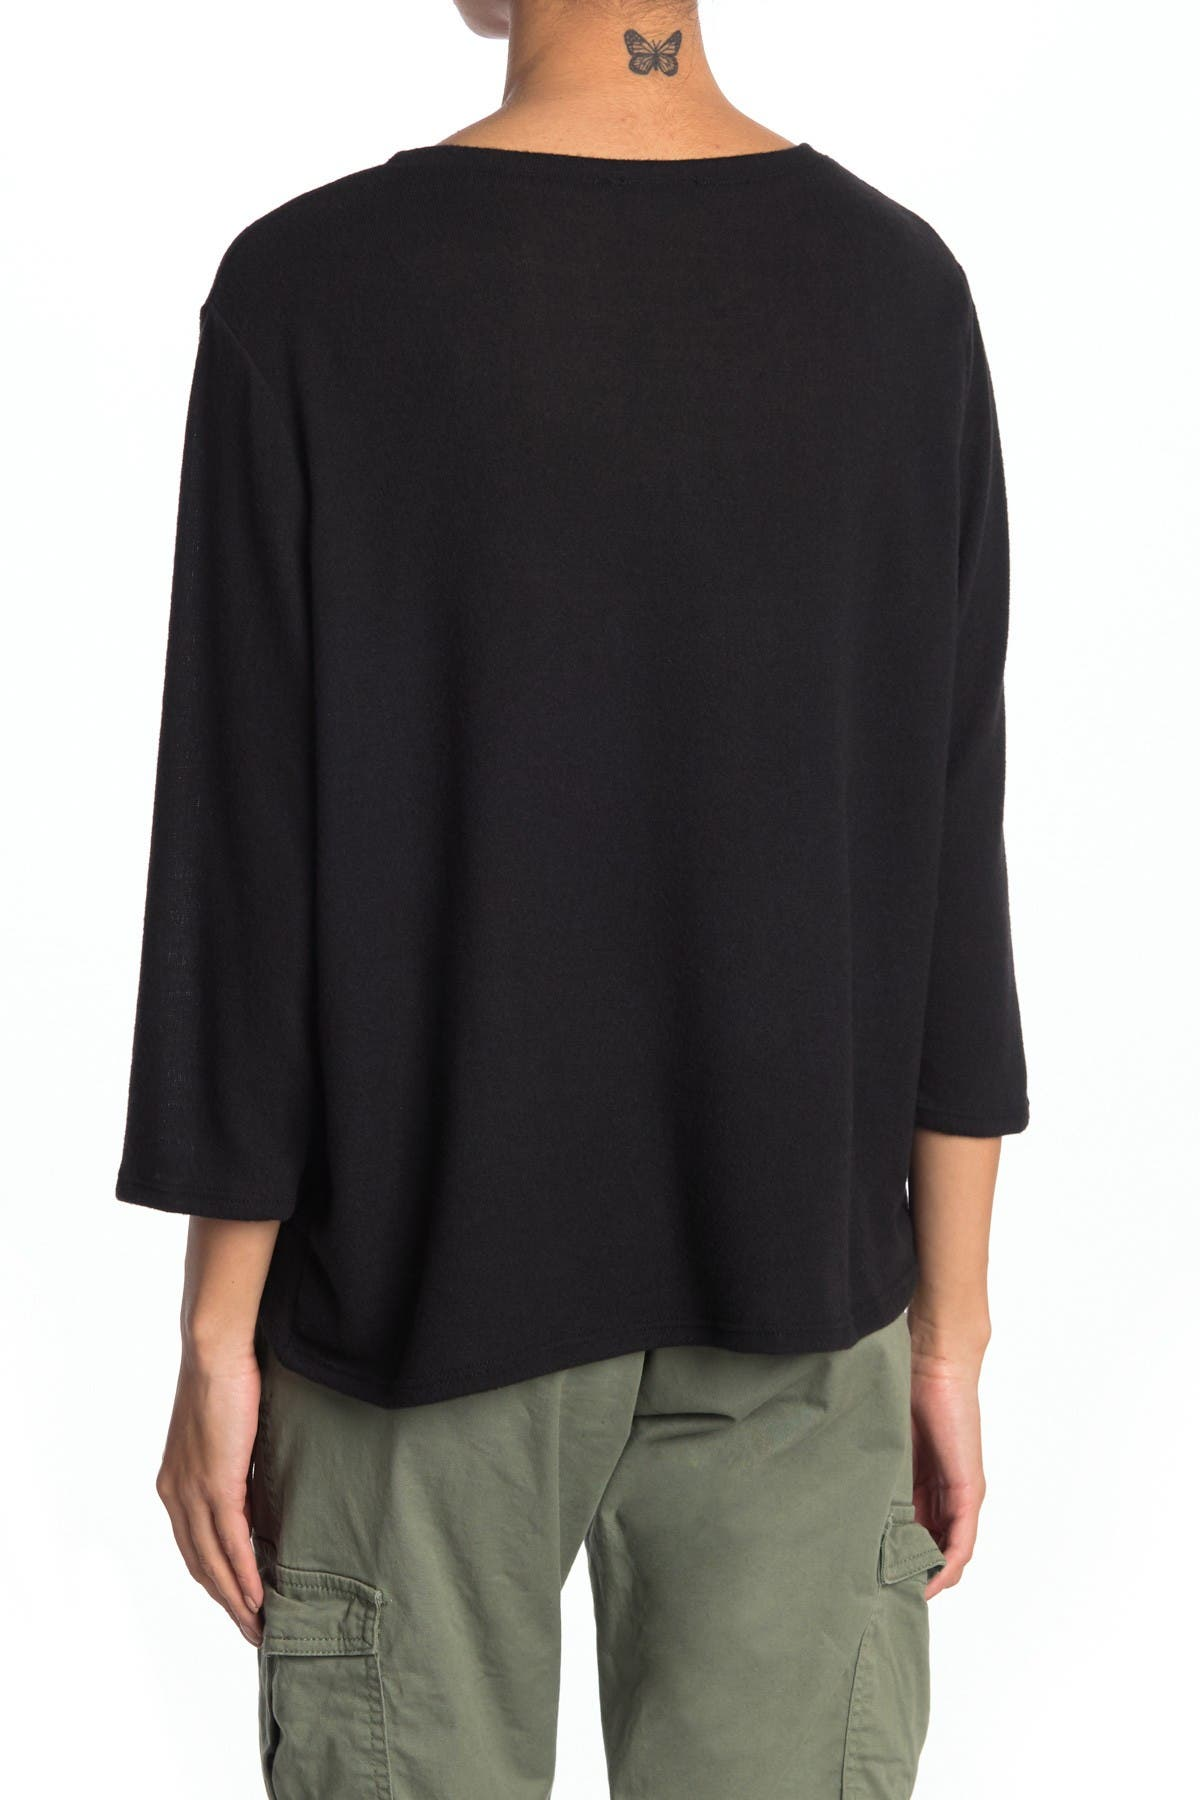 Image of RDI Front Knot Crew Neck Top